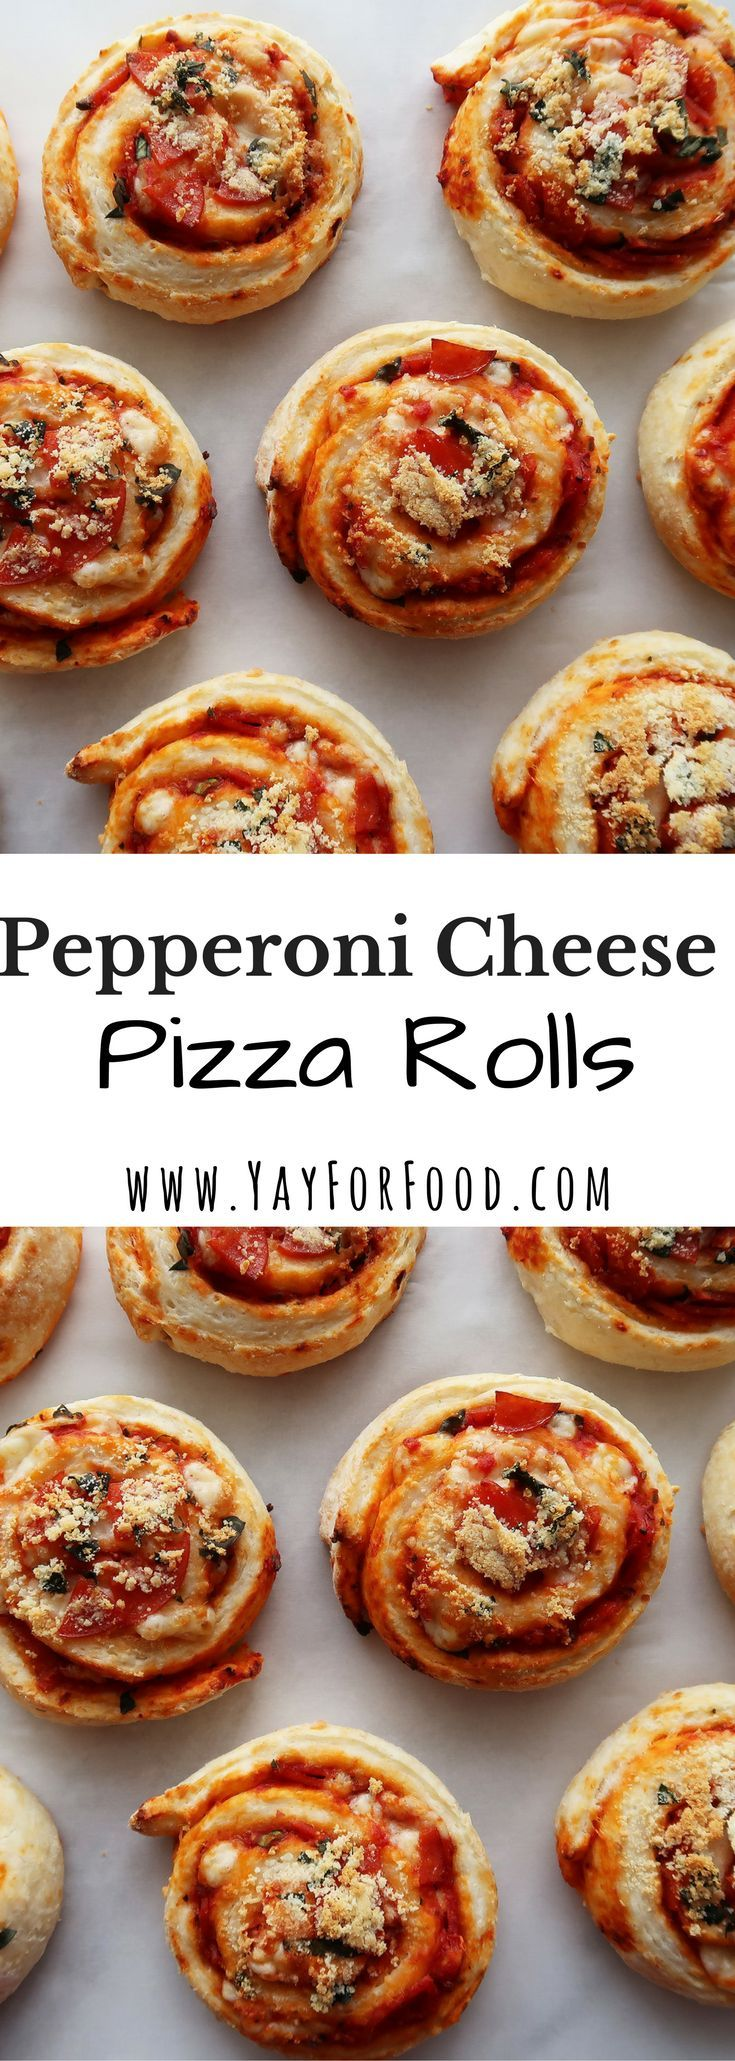 These little pizza rolls are a wonderful snack or appetizer! They are flavourful, easy to make, and can be adapted by changing up the toppings!